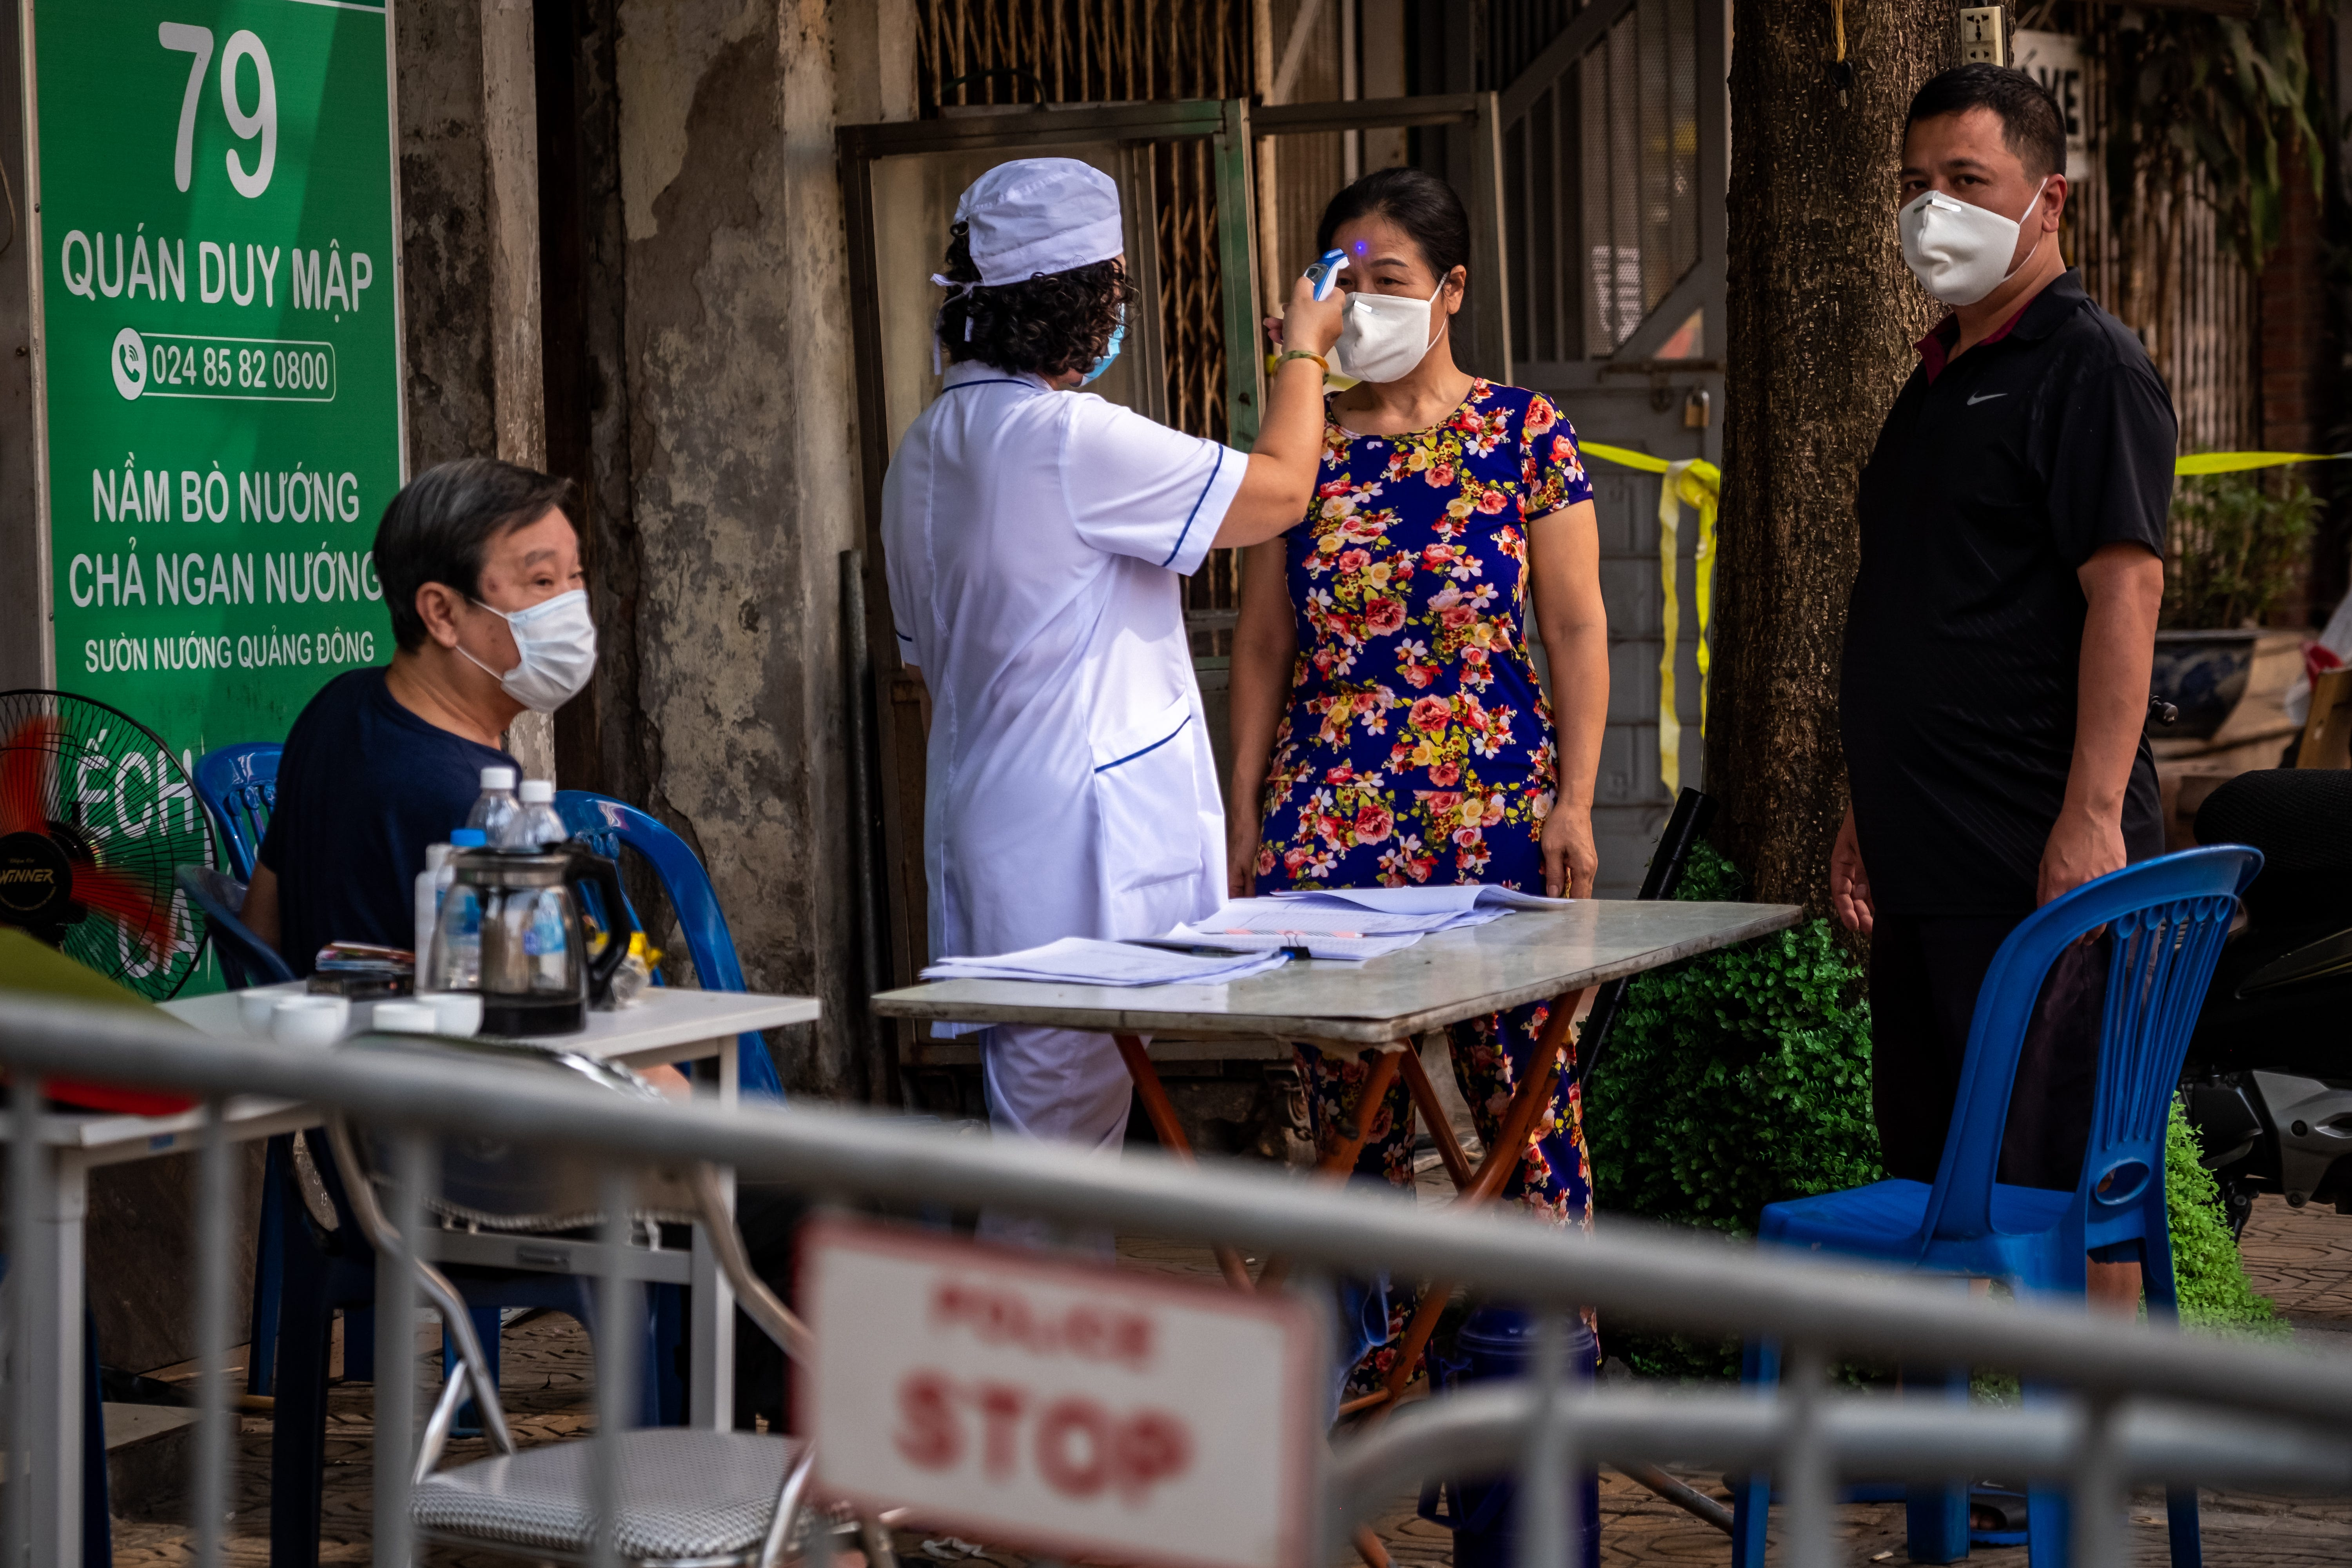 A health worker checks the temperatures of residents in the quarantined area of Truc Bach Street on March 9 in Hanoi. Authorities had blocked Truc Bach Street beginning March 6 to prevent the spread of COVID-19 after one resident, a 26-year-old Vietnamese woman recently back from Europe, contracted the virus.